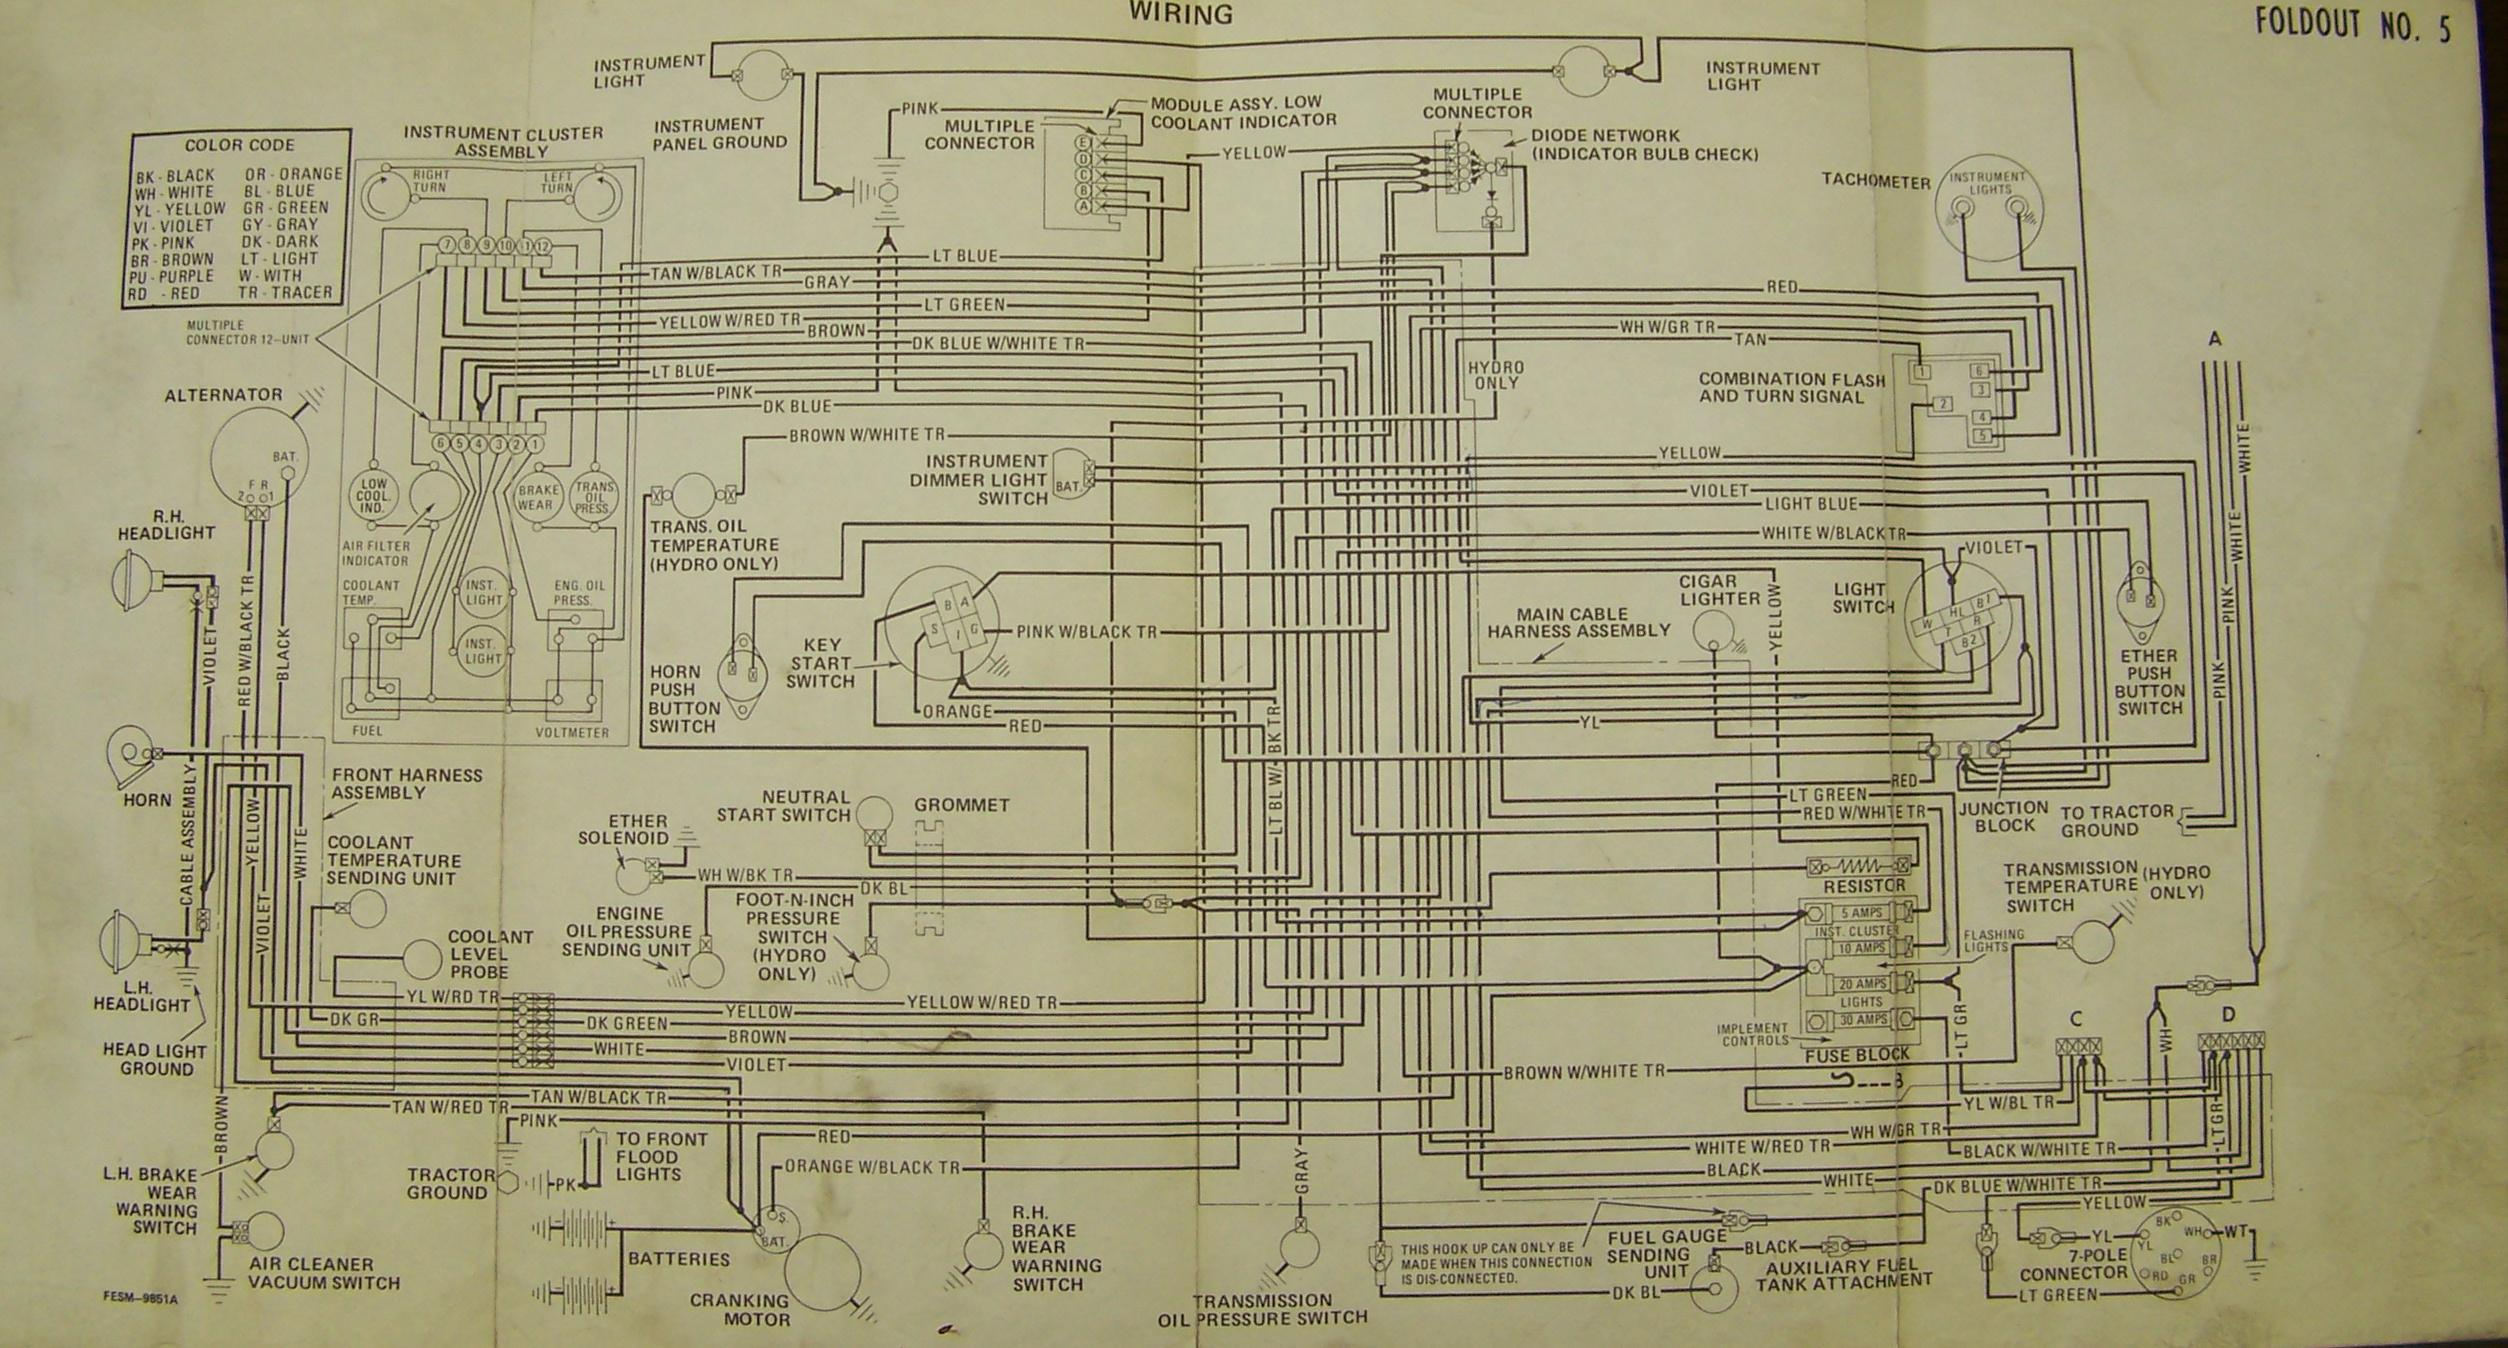 8n Ford Tractor Wiring Diagram Together With Ford 2000 Tractor Wiring